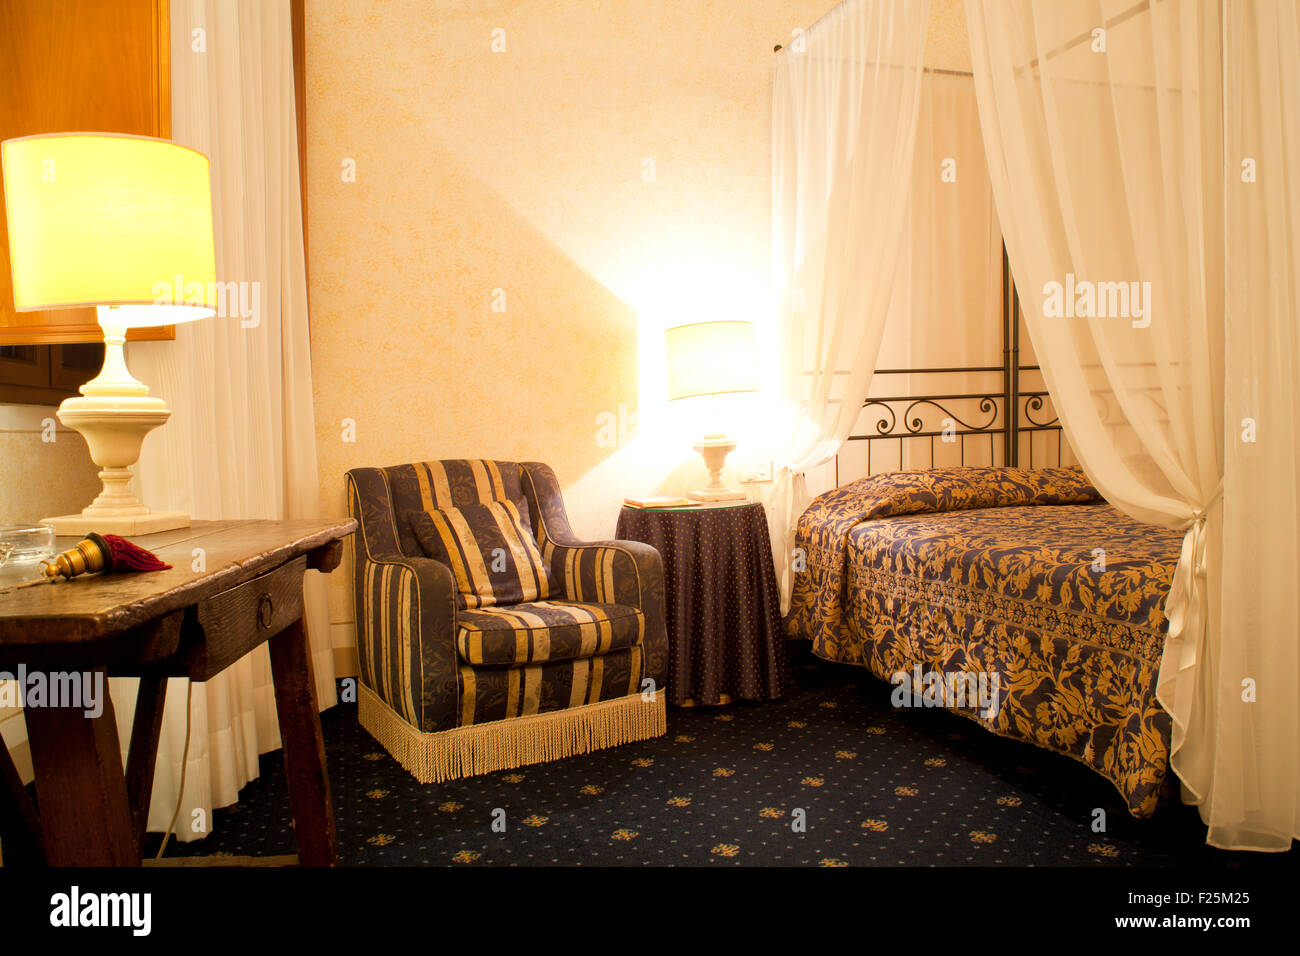 Sofa and bed in an albergue room - Stock Image